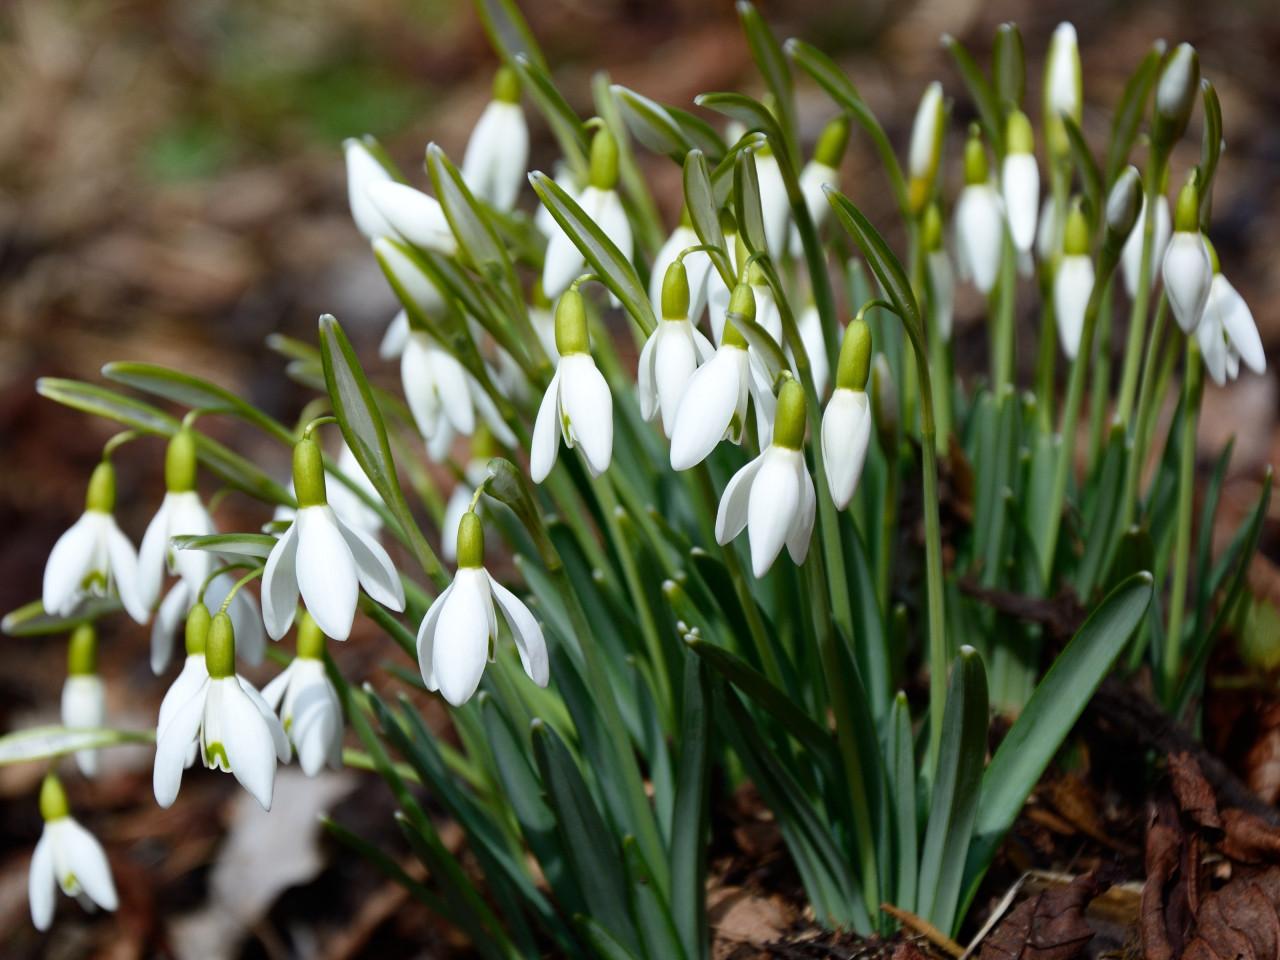 Gorgeous snowdrops | 1280x960 wallpaper